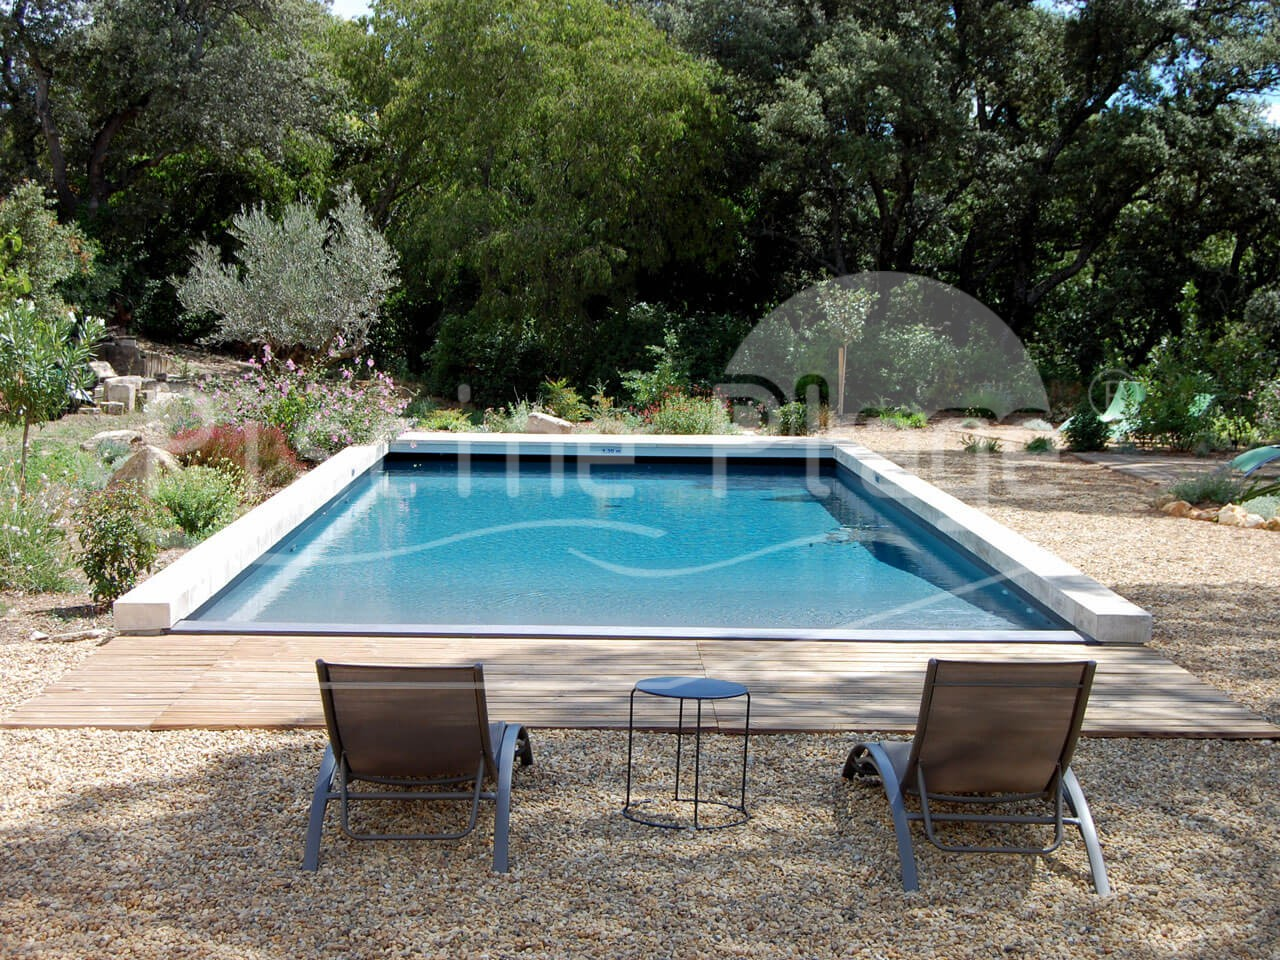 Piscine plage piscine plage for Piscine demontable rectangulaire